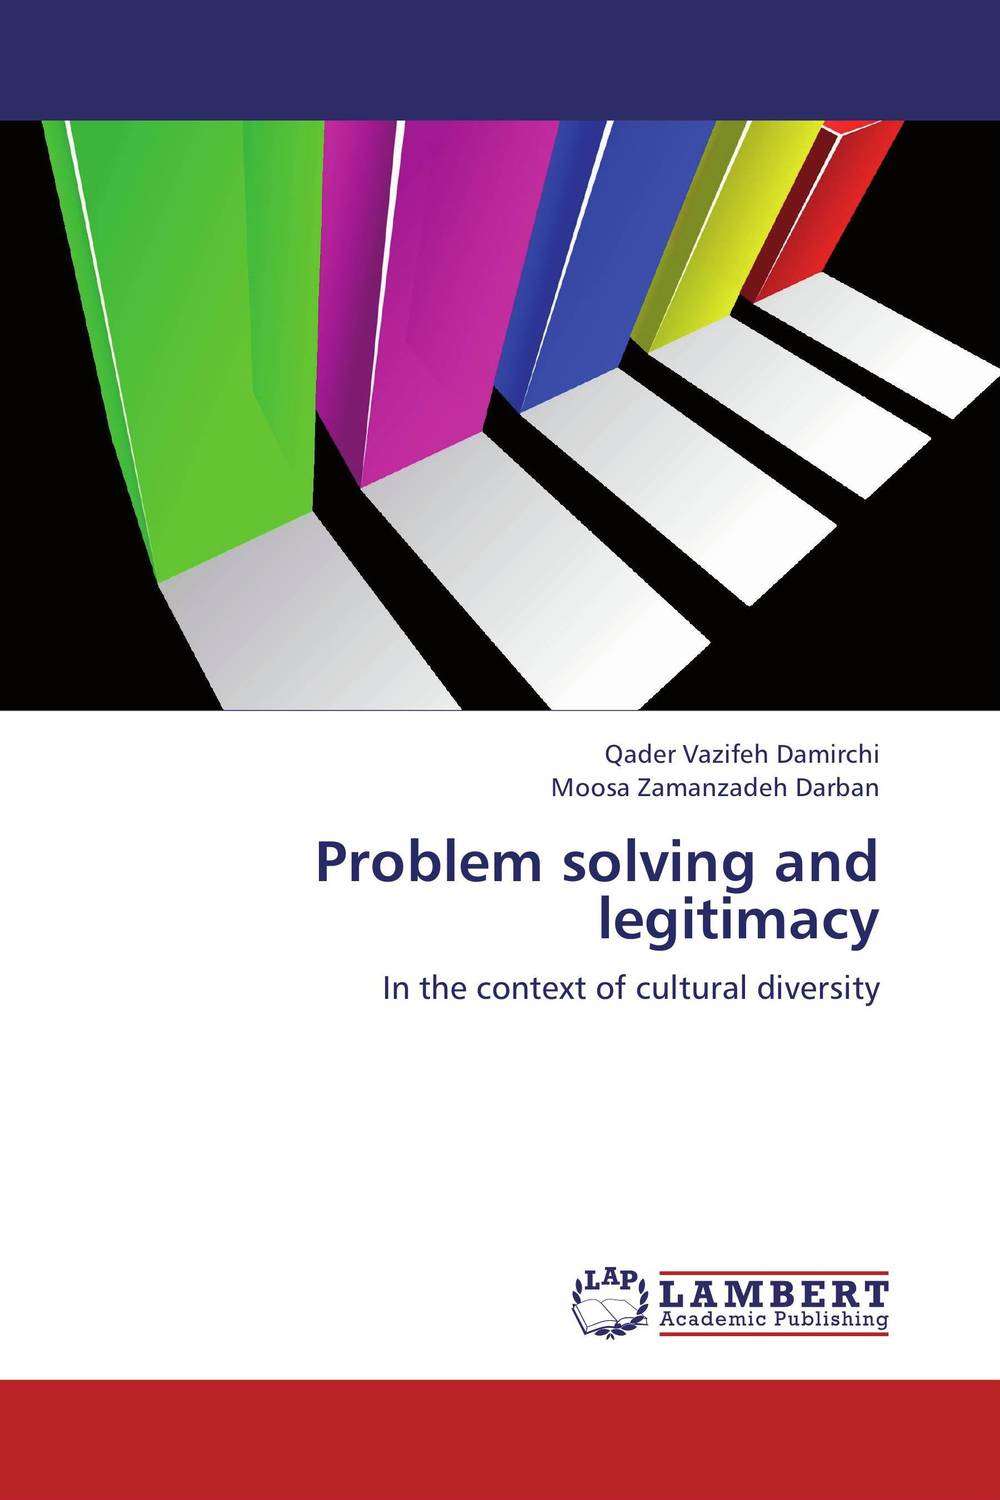 Problem solving and legitimacy orality online and the promotion of cultural diversity